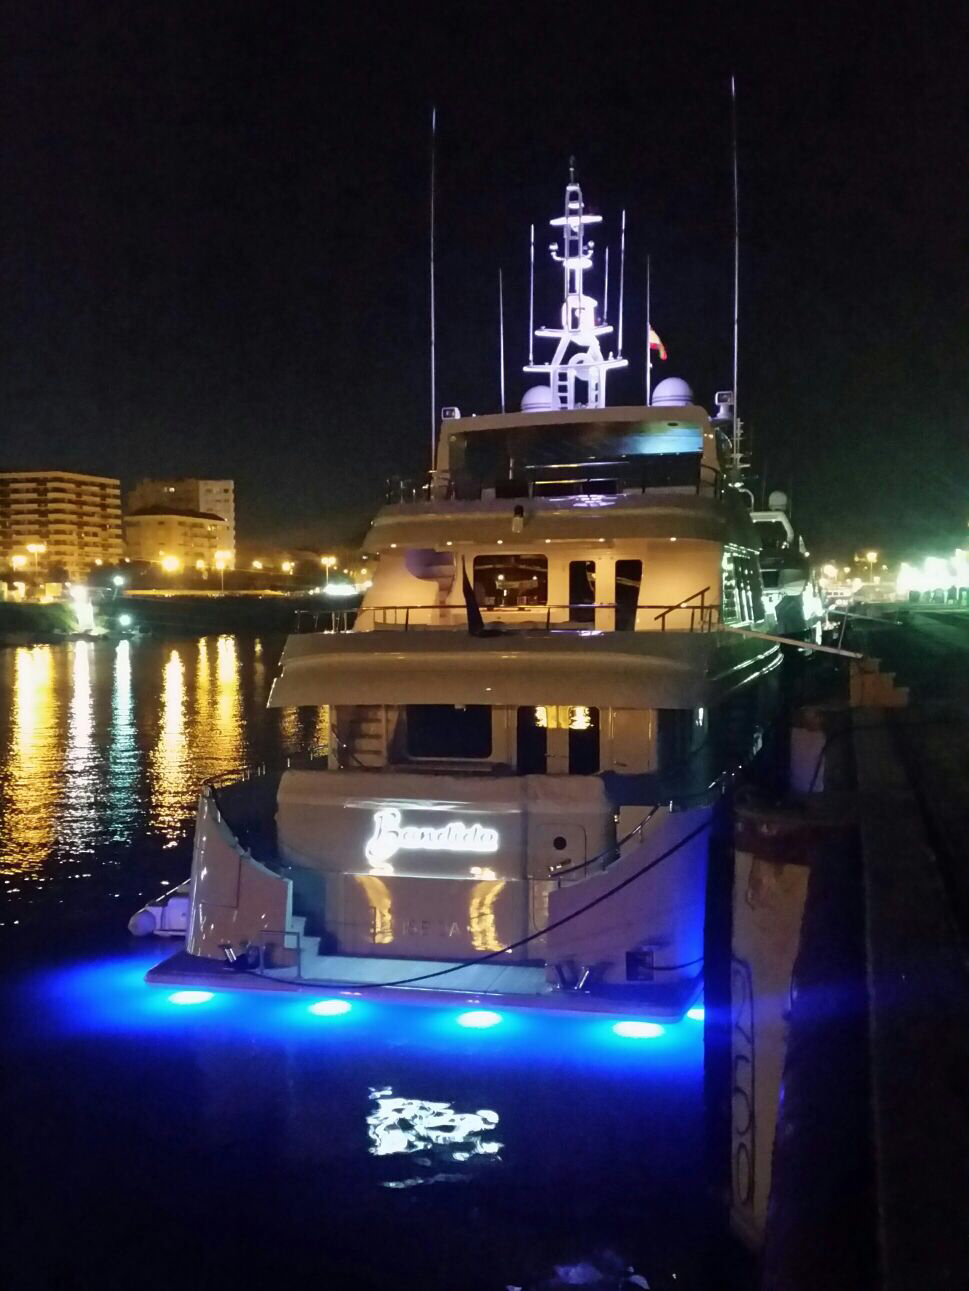 Bandido 90 with night lights / Bandido con luces nocturnas